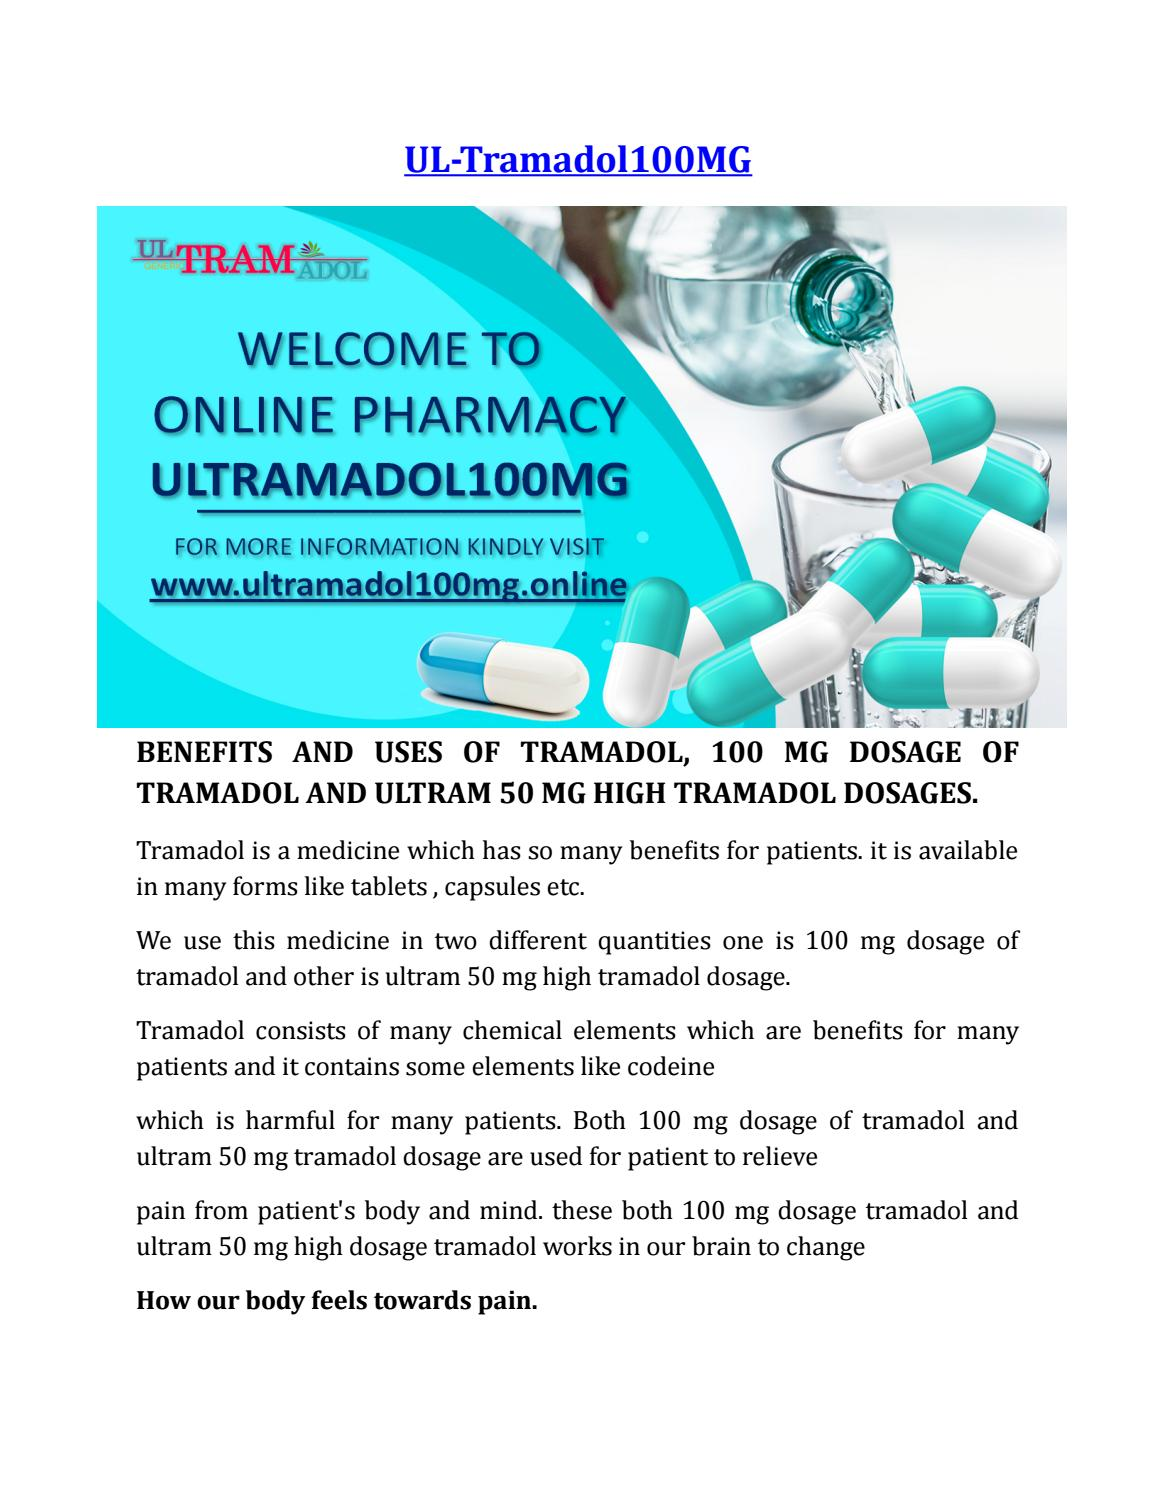 BENEFITS AND USES OF TRAMADOL, 100 MG DOSAGE OF TRAMADOL AND